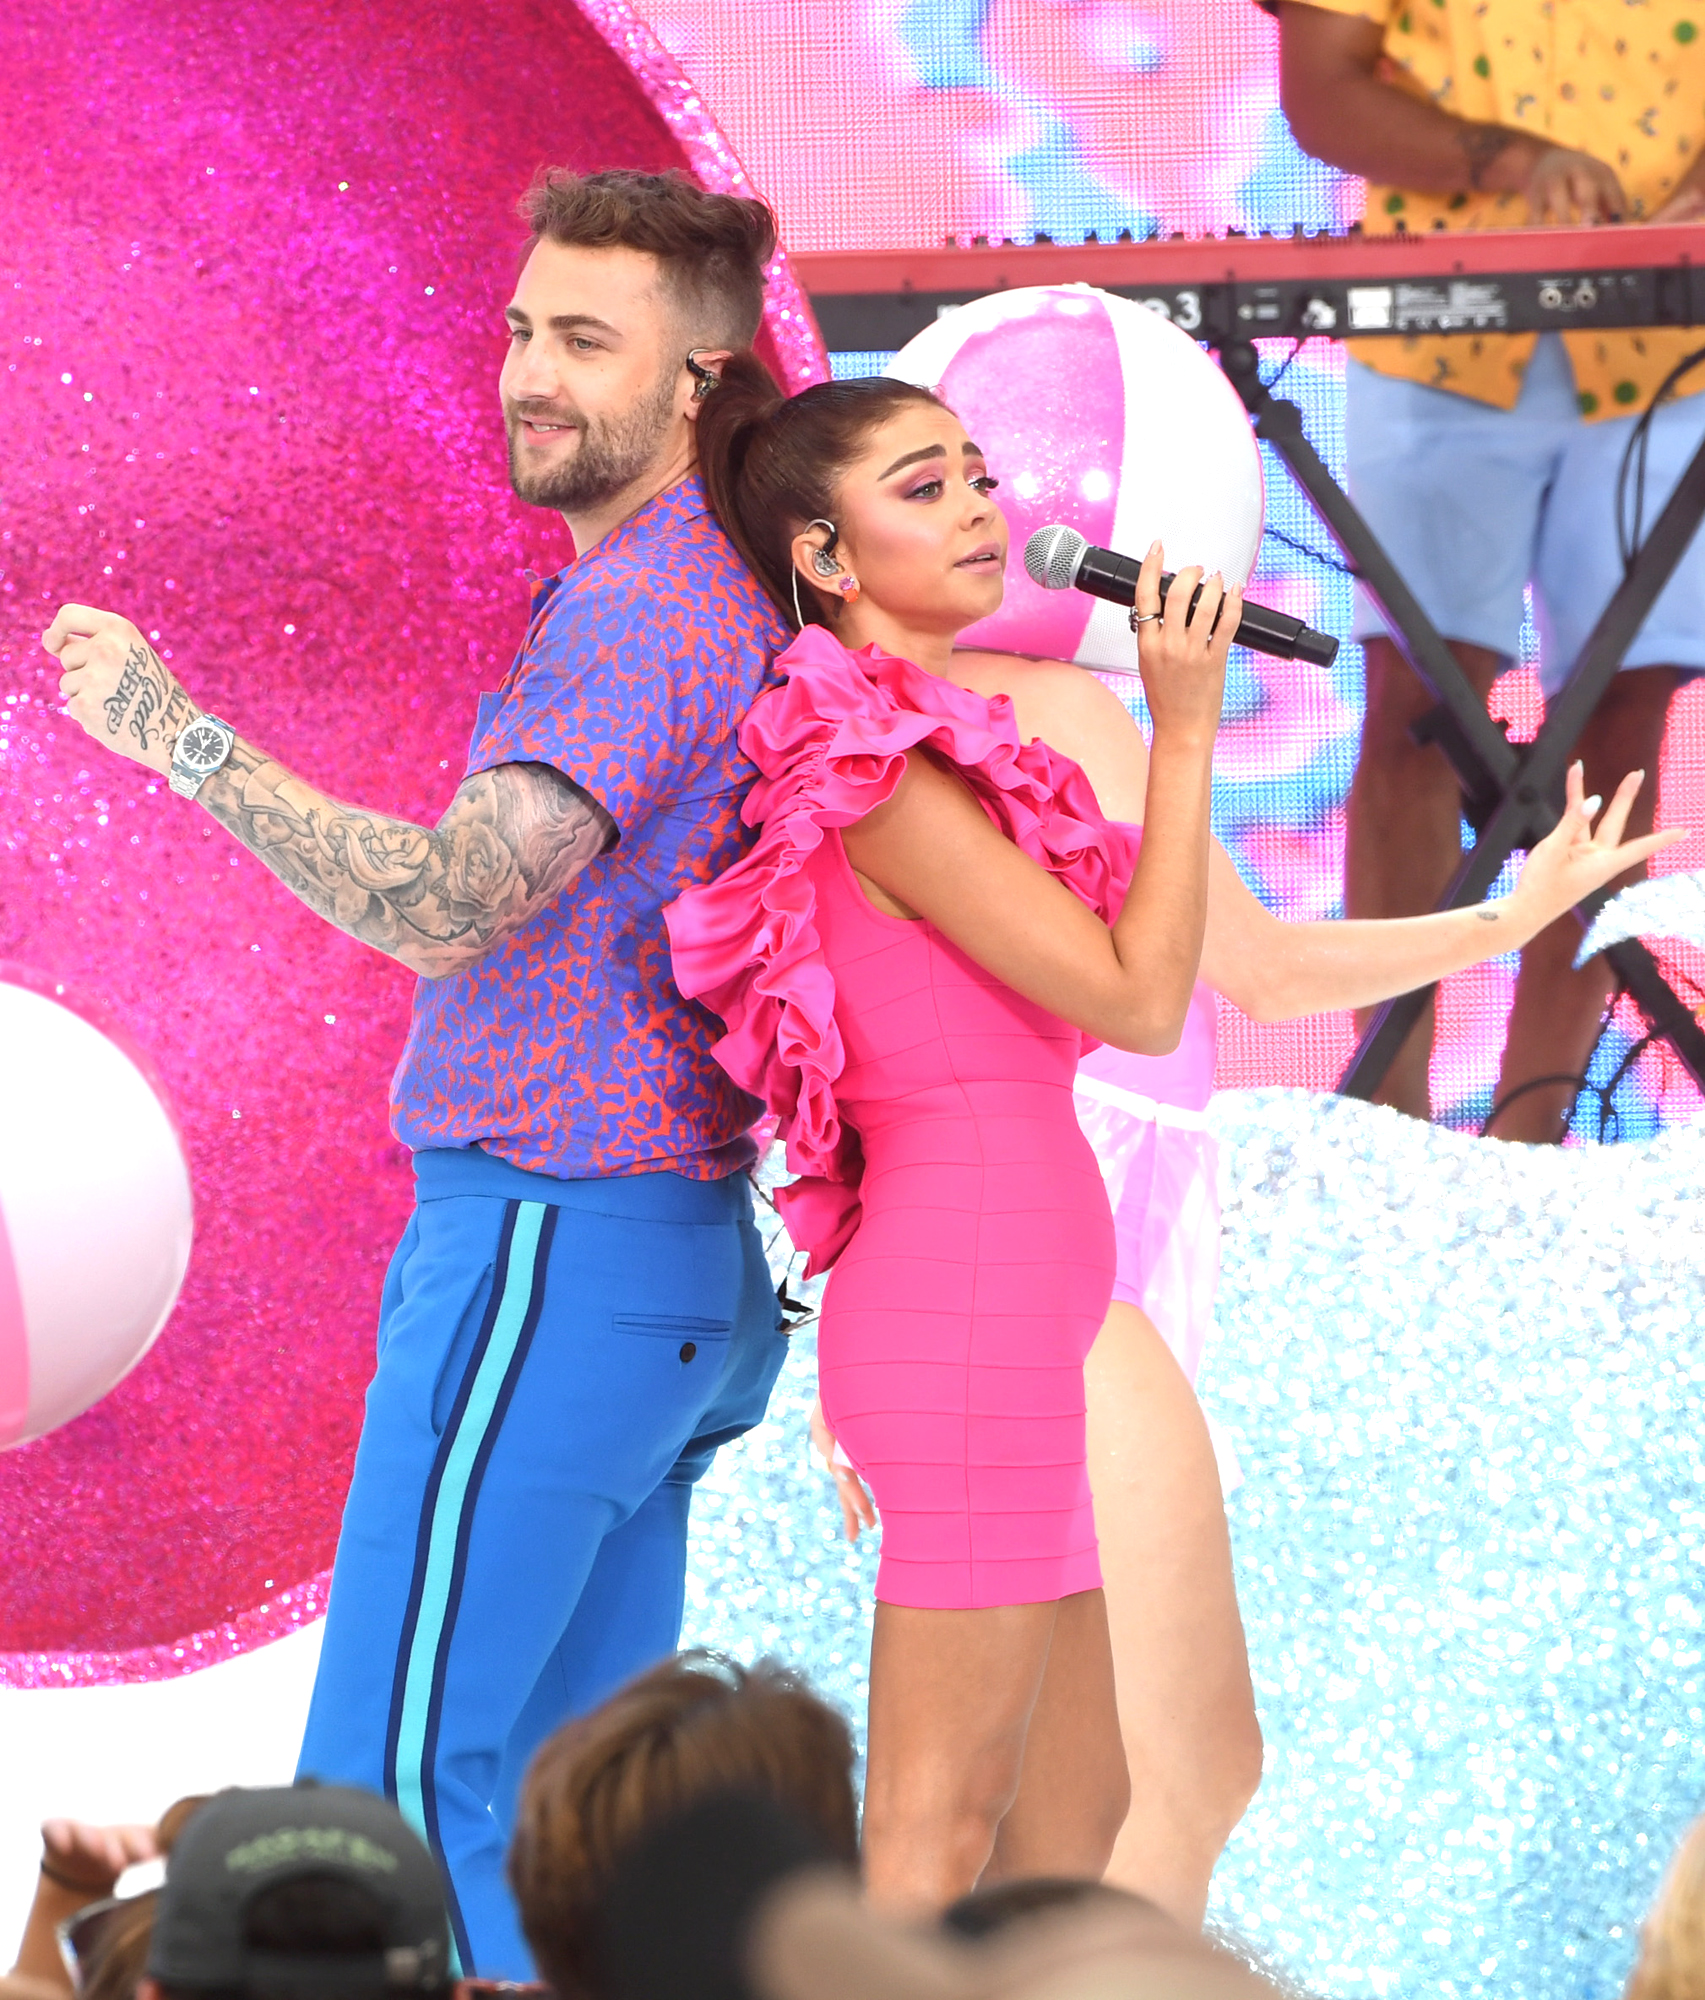 ordan McGraw and Sarah Hyland perform onstage during FOX's Teen Choice Awards 2019 on August 11, 2019 in Hermosa Beach